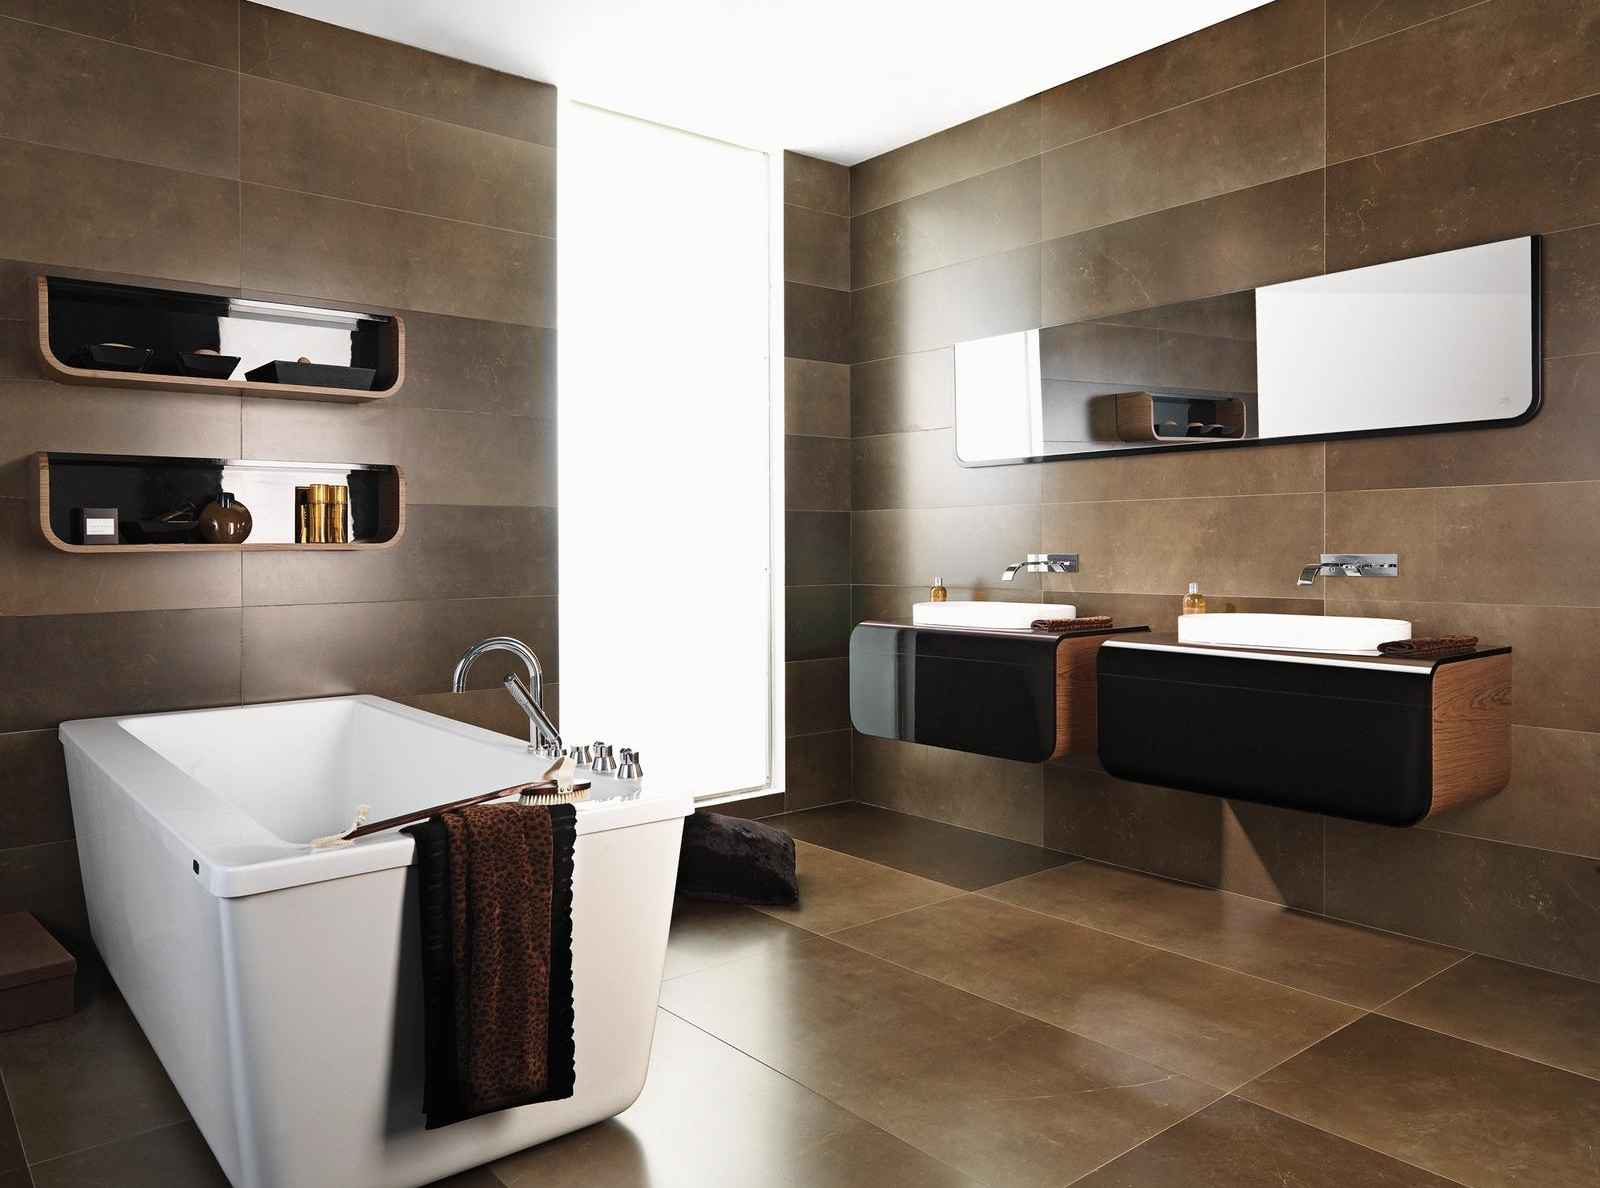 classic-porcelain-bathroom-tile-white-bathtub-durable-bathroom-ceramic-tiles-natural-stone-accent-freestanding-bathtub-faucet-double-sink-vanity-double-chrome-faucet-wall-mirror-wall-shelf-storage-b